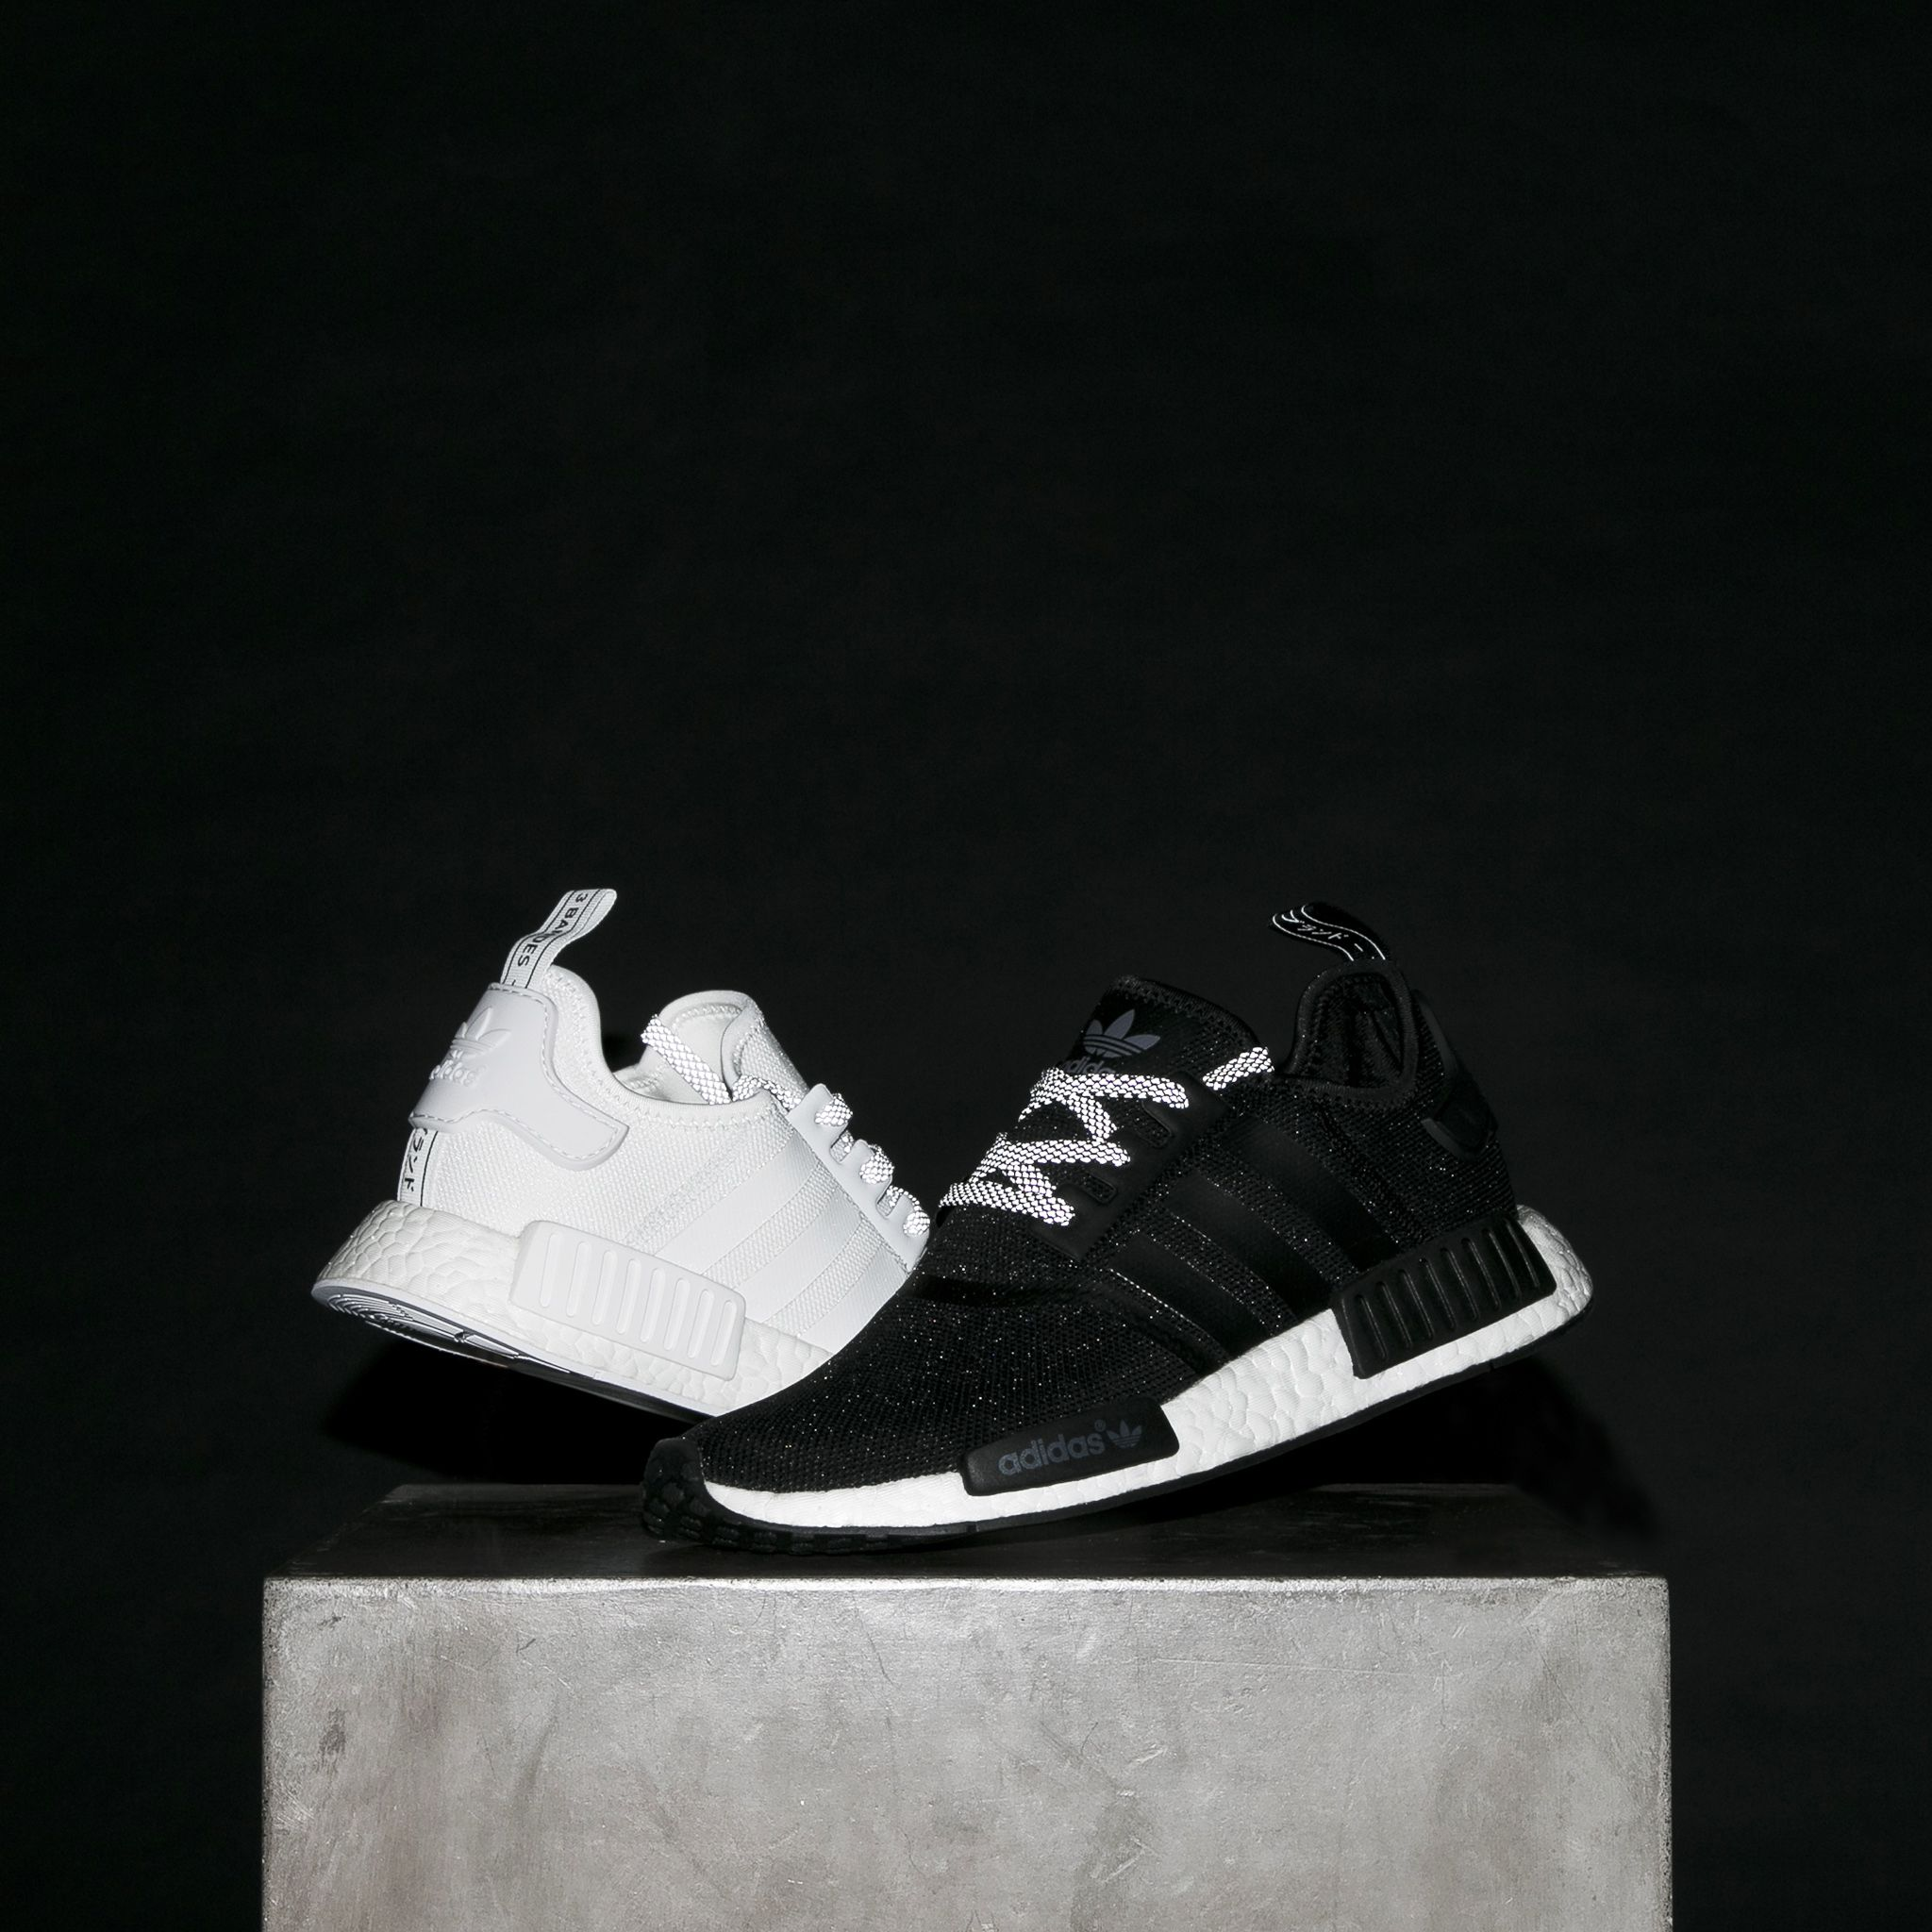 adidas Originals Updates the with Reflective Detaling: adidas Originals  continues to innovate the NMD, what's become one of the most popular  silhouettes in ...